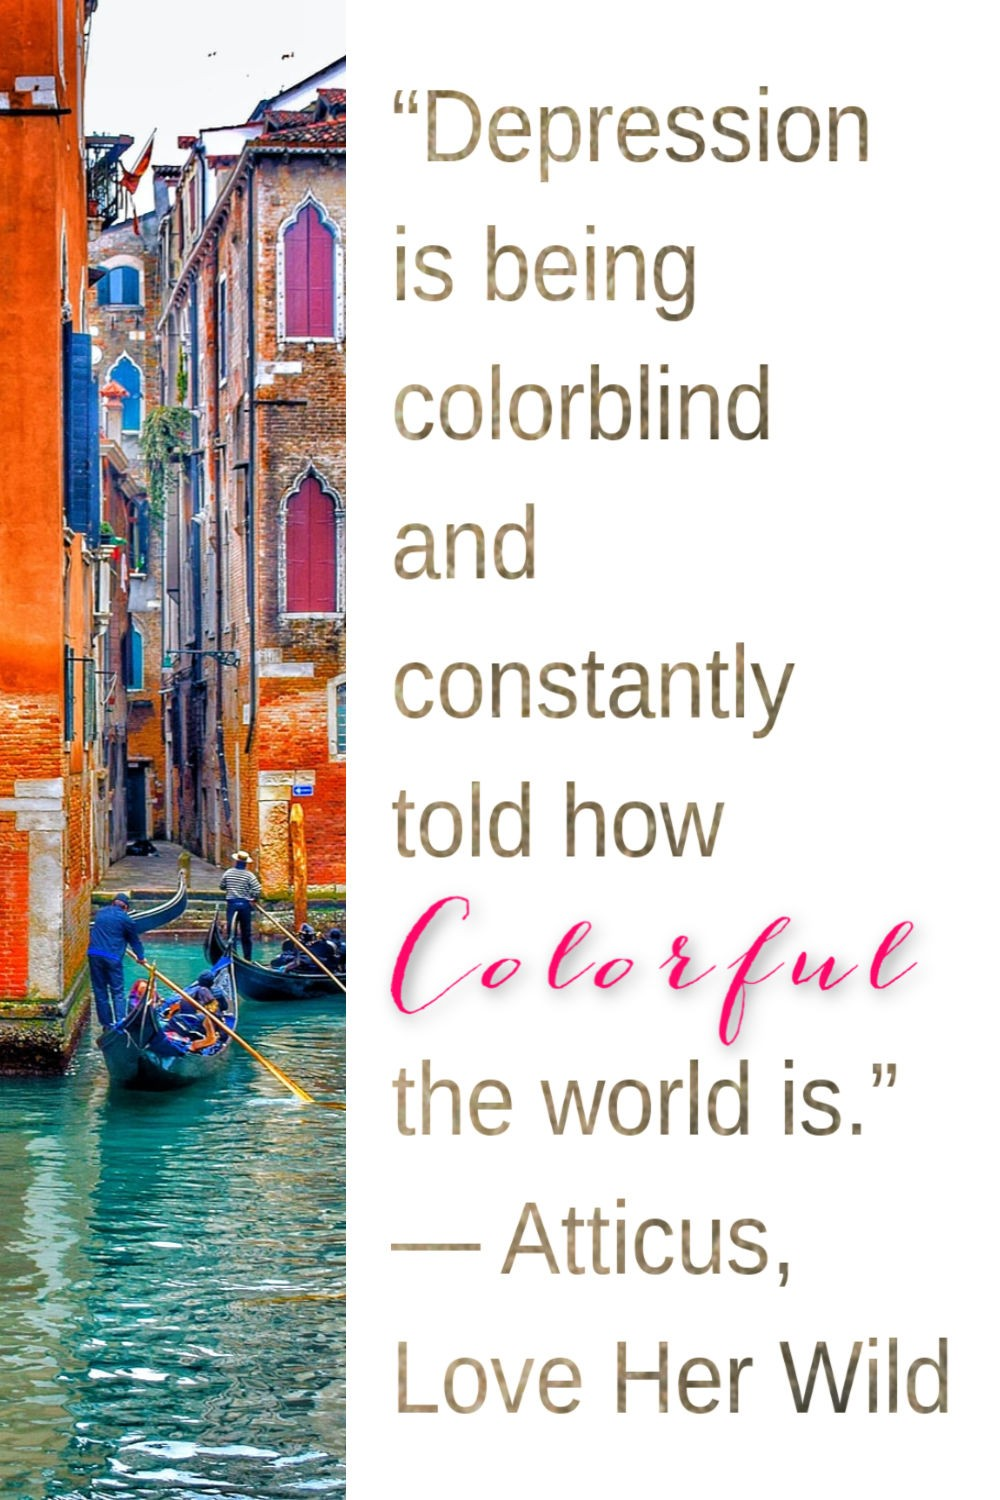 """Depression is being colorblind and constantly told how colorful the world is."" — Atticus, Love Her Wild Depression and anxiety quotes"